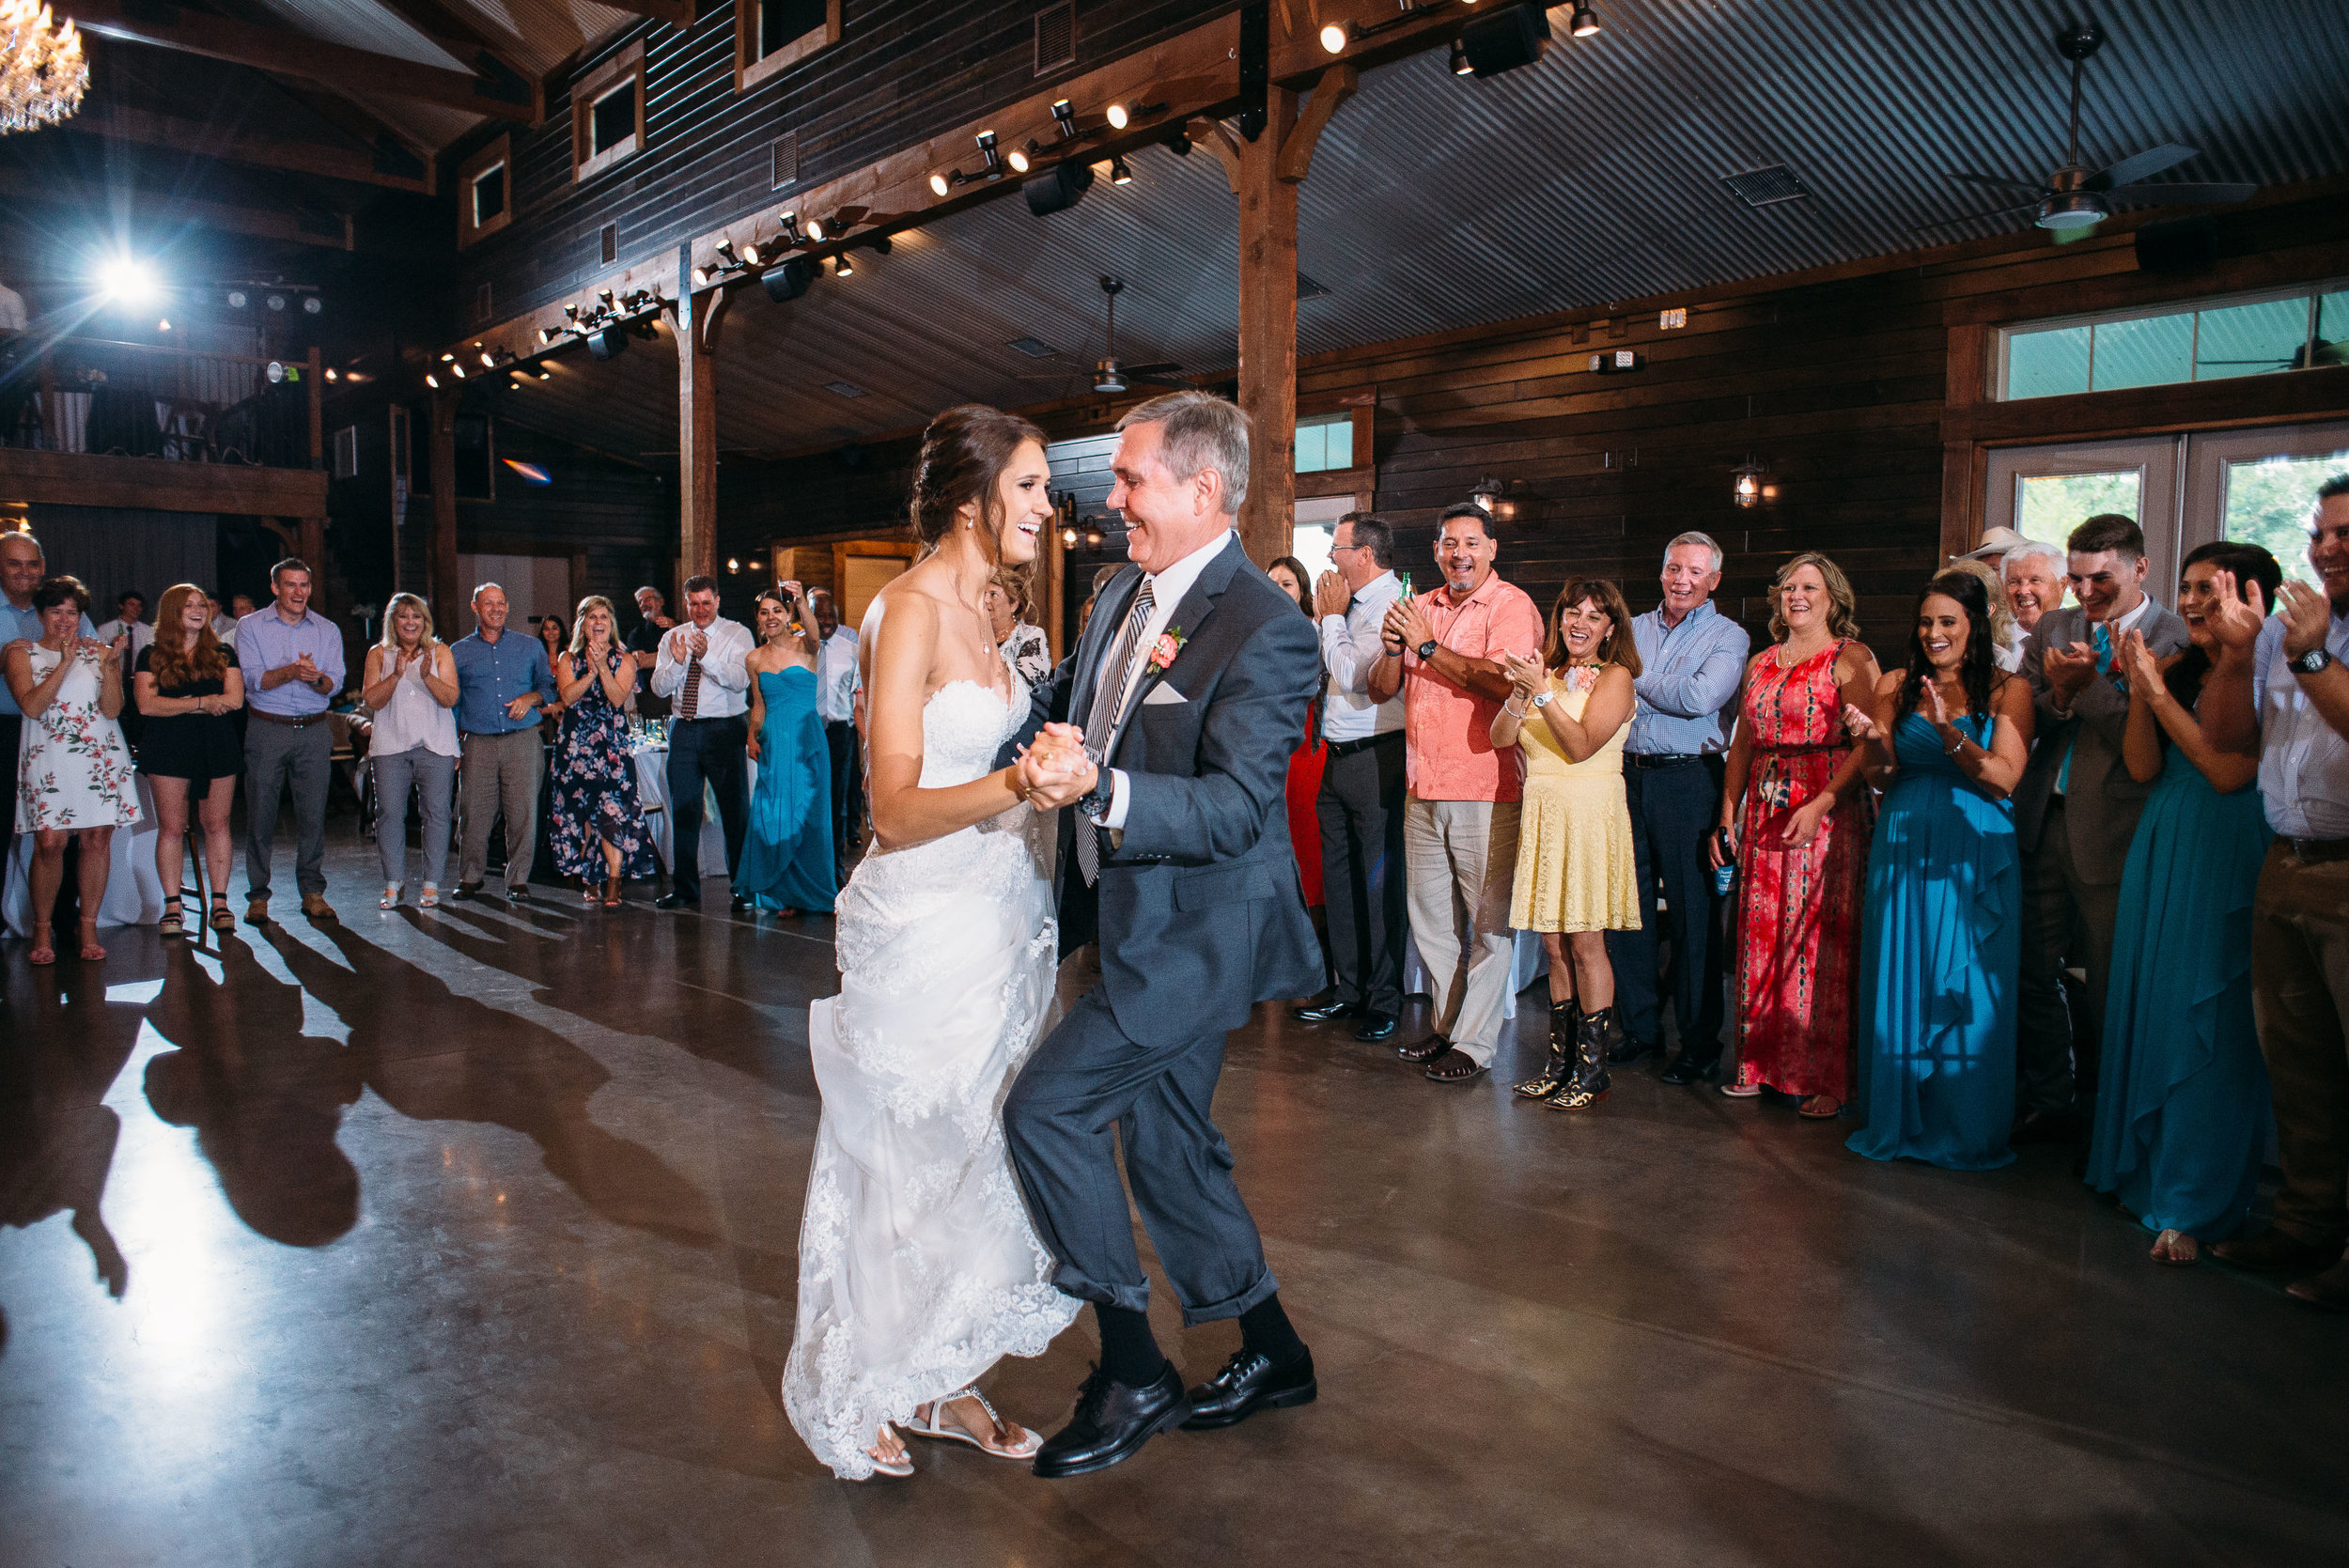 Cameron-Price-Peach-Creek-Ranch-Wedding-Ceremony-Bridals-Engagement-College-Station-Photographer-Videographer-San-Angel-Photo-00-0105.jpg